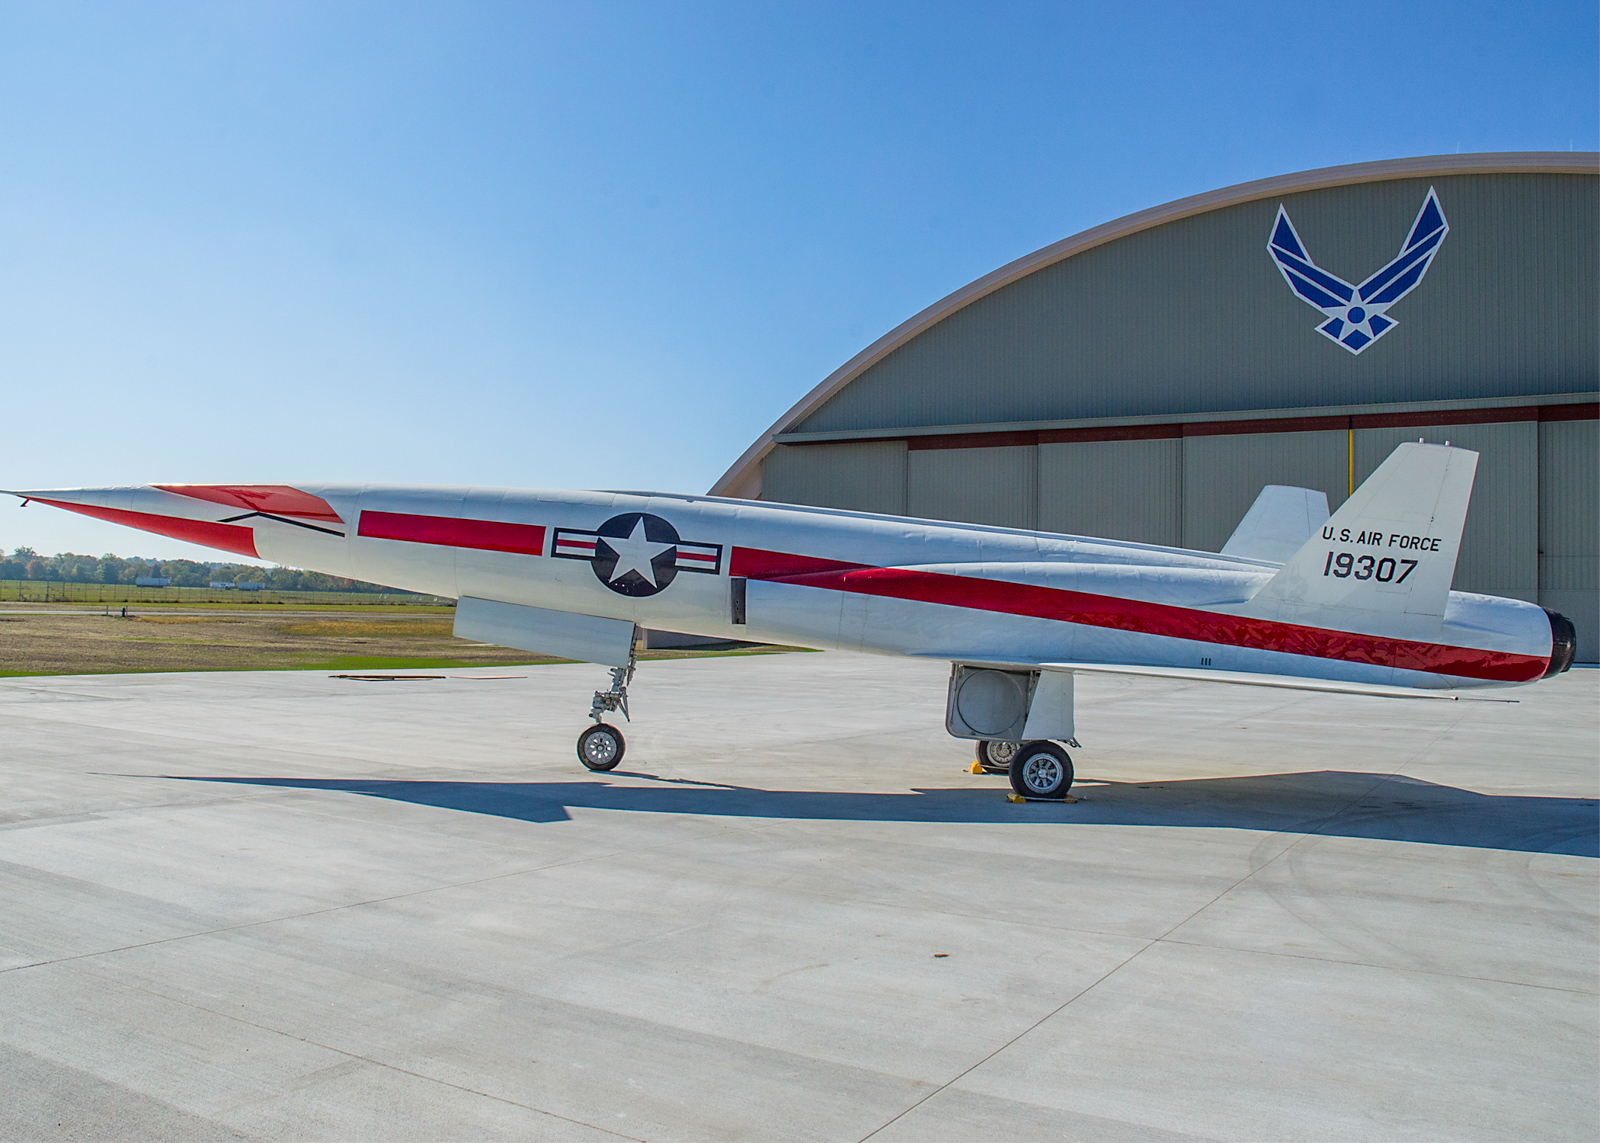 The North American X-10 posed in front of its new home at the National Museum of the U.S. Air Force on Oct. 14, 2015. (U.S. Air Force photo by Ken LaRock)